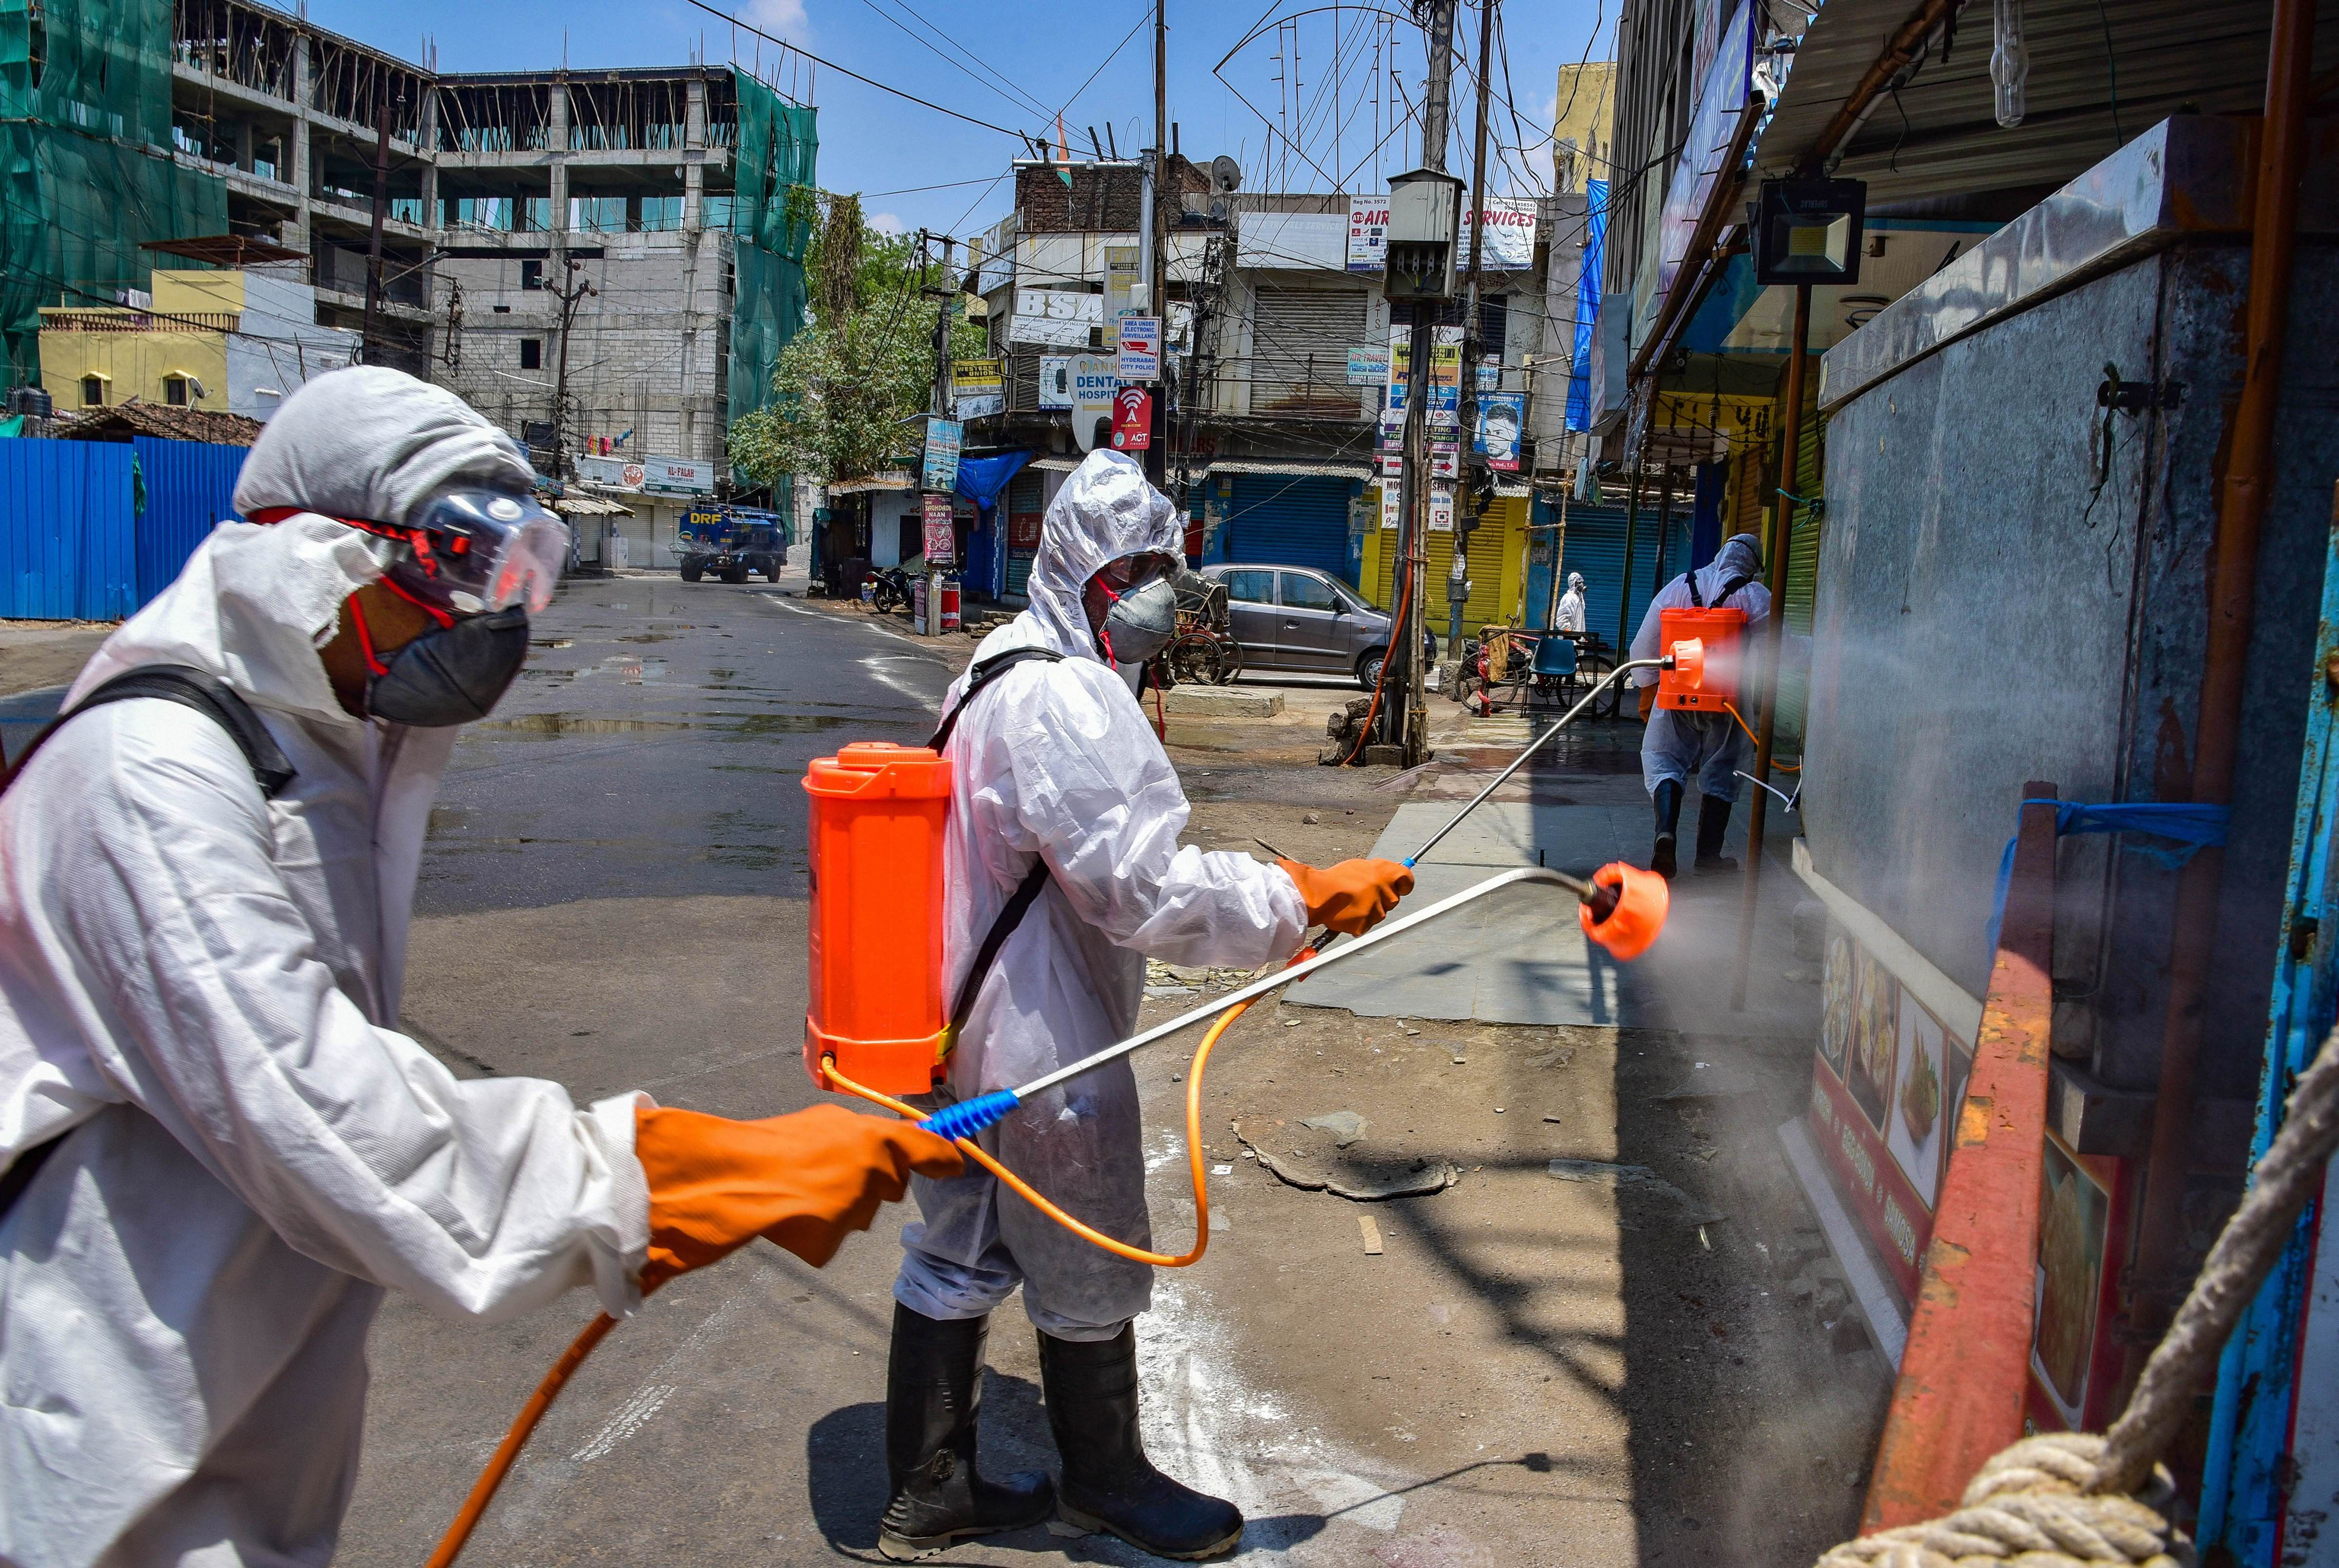 Greater Hyderabad Municipal Corporation (GHMC) workers spray disinfectant at a containment area, during a nationwide lockdown in the wake of coronavirus pandemic, in Hyderabad, Sunday, April 26, 2020